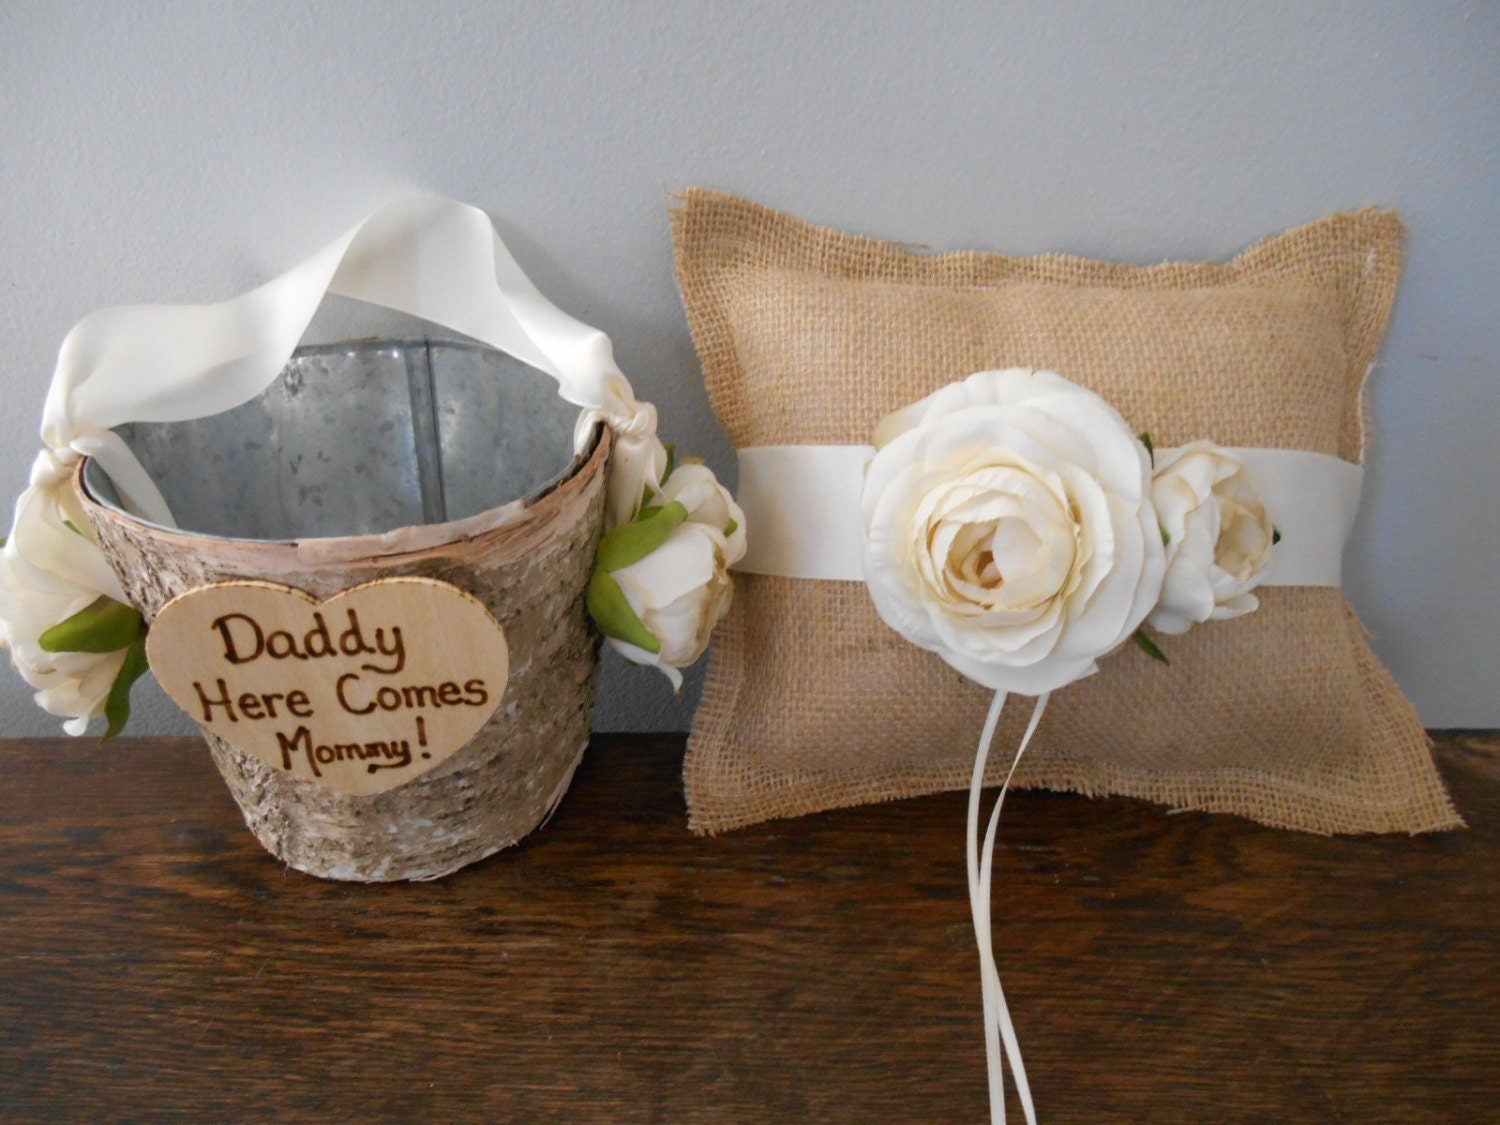 How To Make Flowers Girl Basket : Rustic flower girl basket and burlap ring bearer pillow set